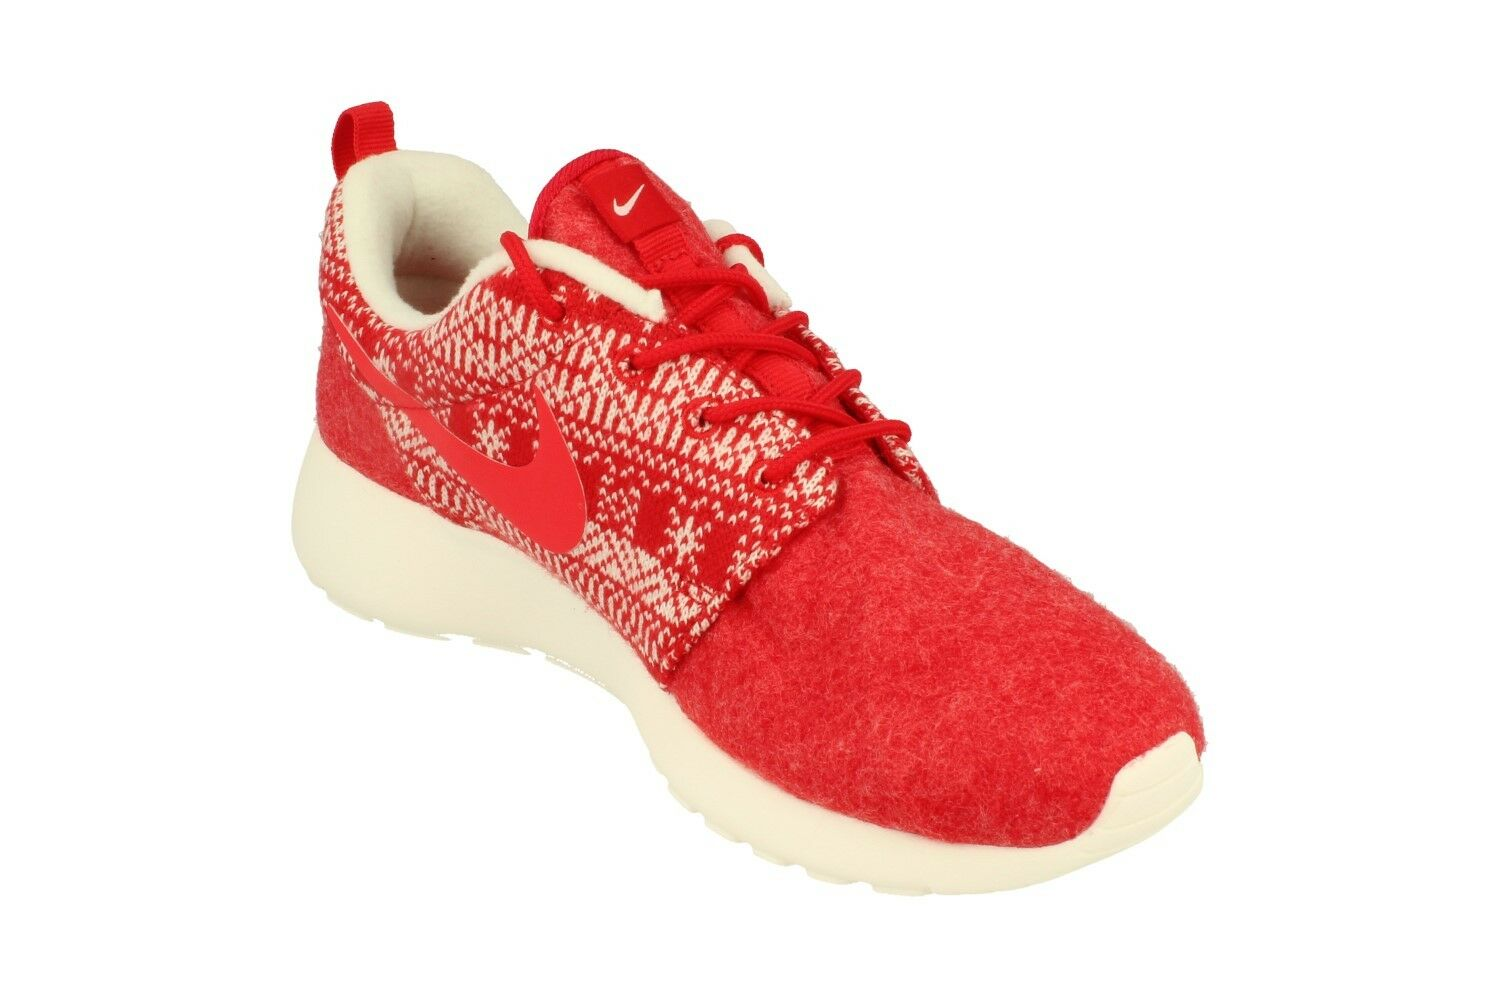 c8d39abef0e2 Nike WMNS Roshe One Winter Christmas Sweater Red White 685286-661 US 6 8.5  2015 US 7 EUR 38 24cm for sale online